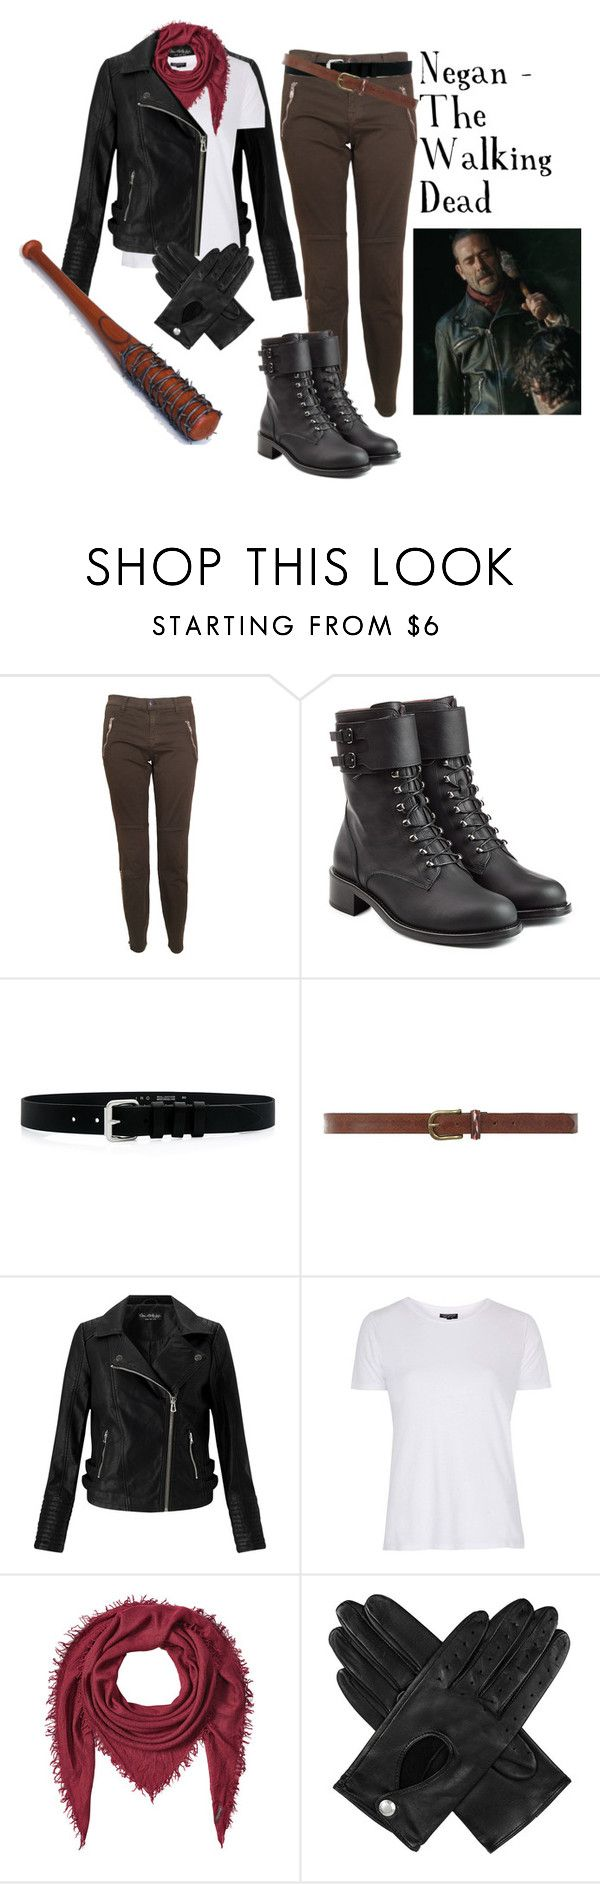 """*unisex* Negan Costume."" by queen-leo-1999 ❤ liked on Polyvore featuring J Brand, Philosophy di Lorenzo Serafini, IRO, Dorothy Perkins, Miss Selfridge, Topshop, Faliero Sarti and Dents"